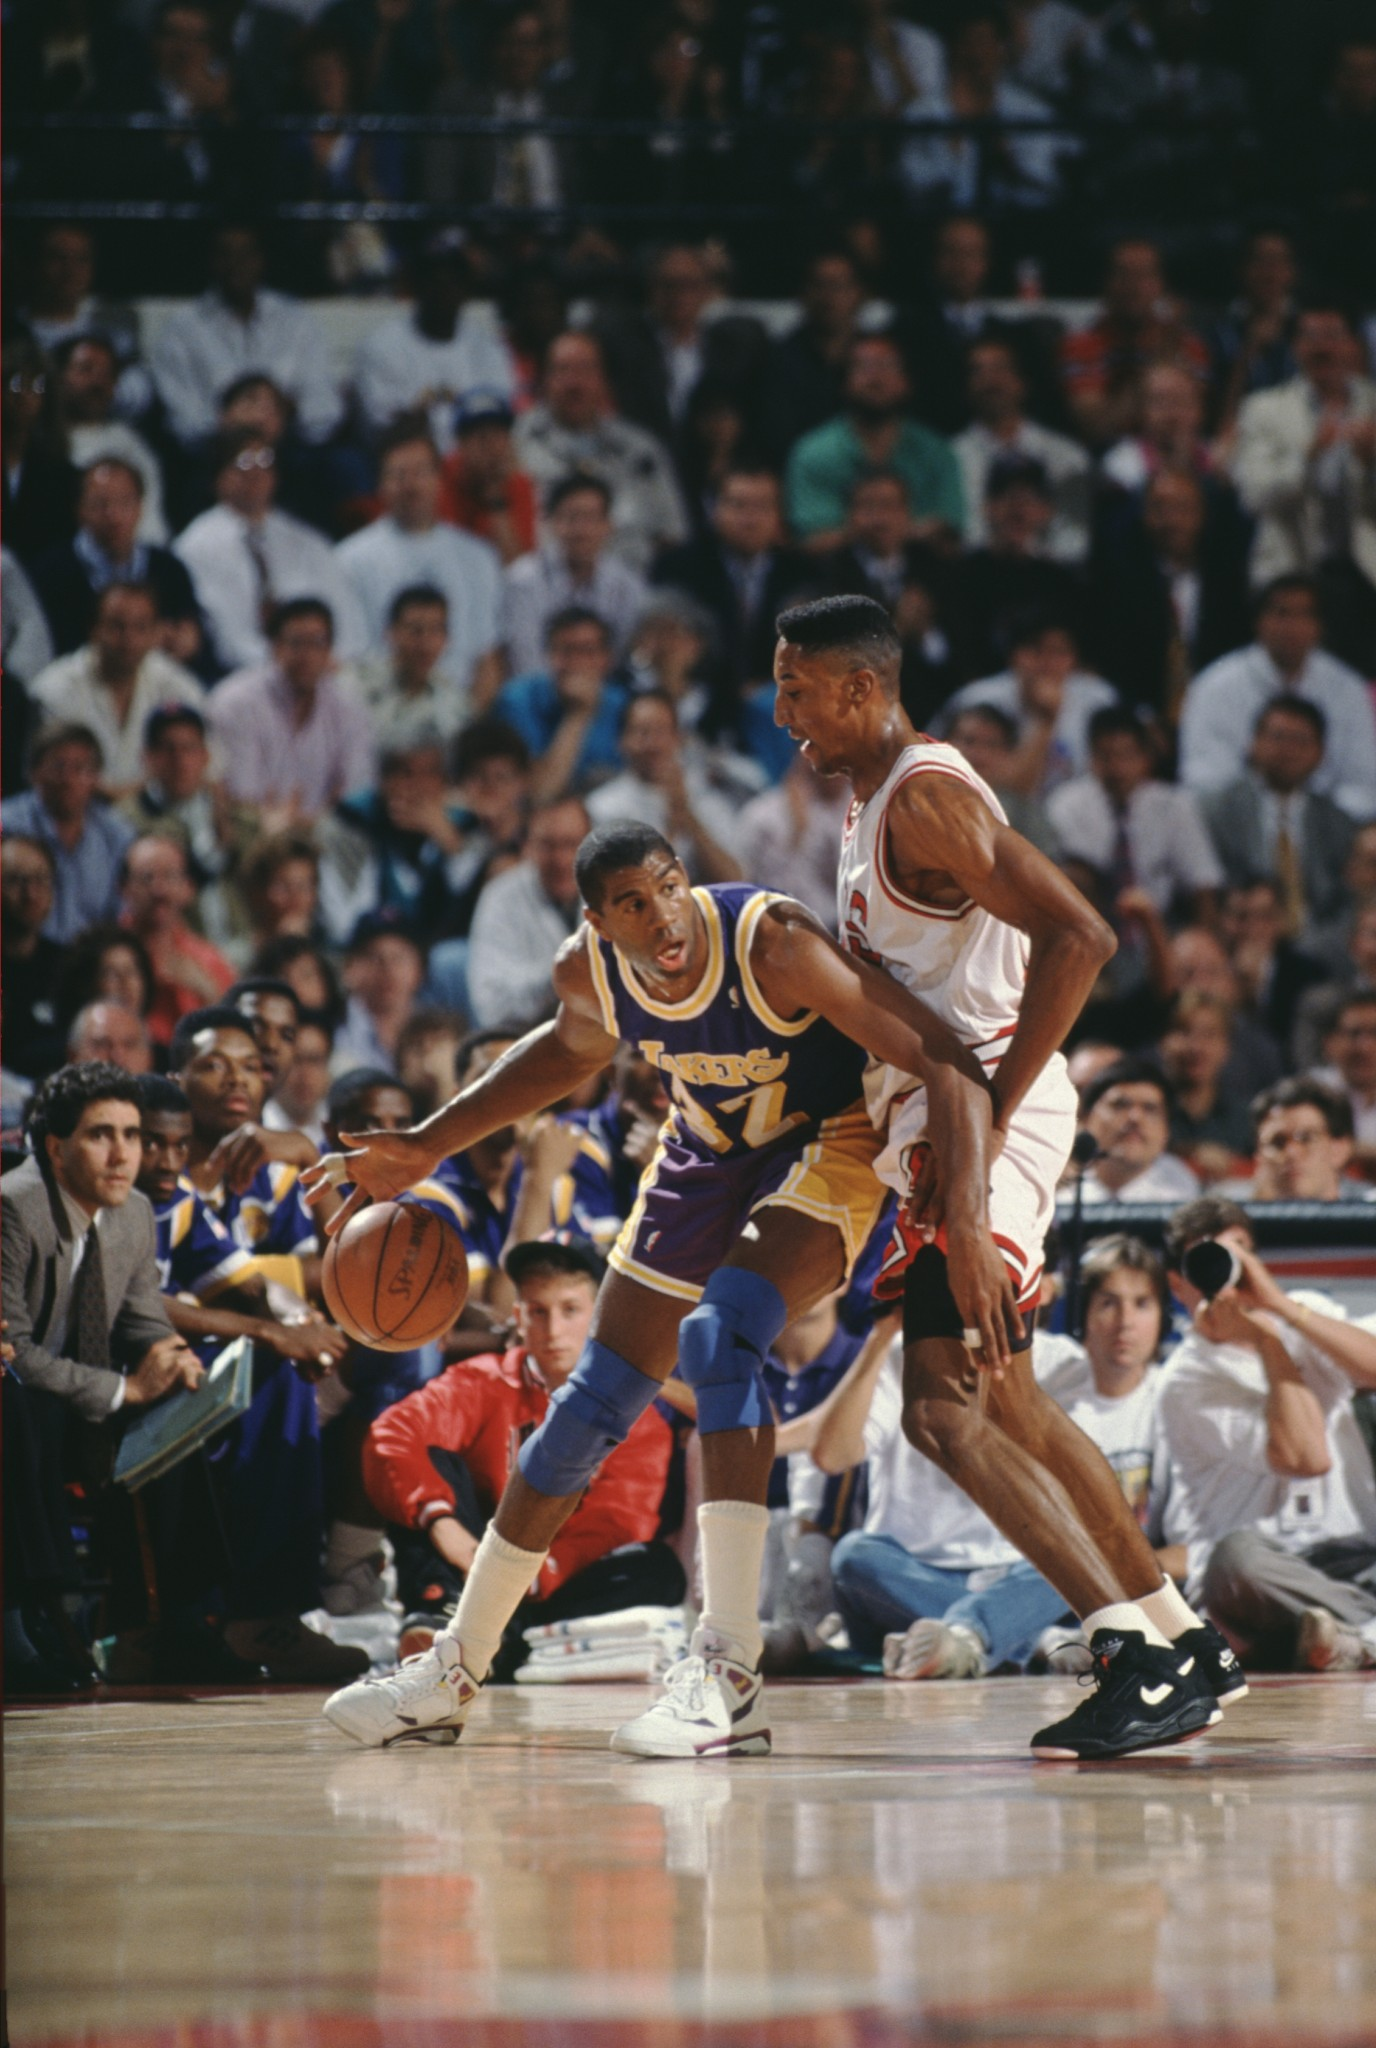 1991-06-05 - Gm 2 v LAL - 1991 NBA Finals - Scottie Pippen defends Magic Johnson - 1 - (Bill Smith)